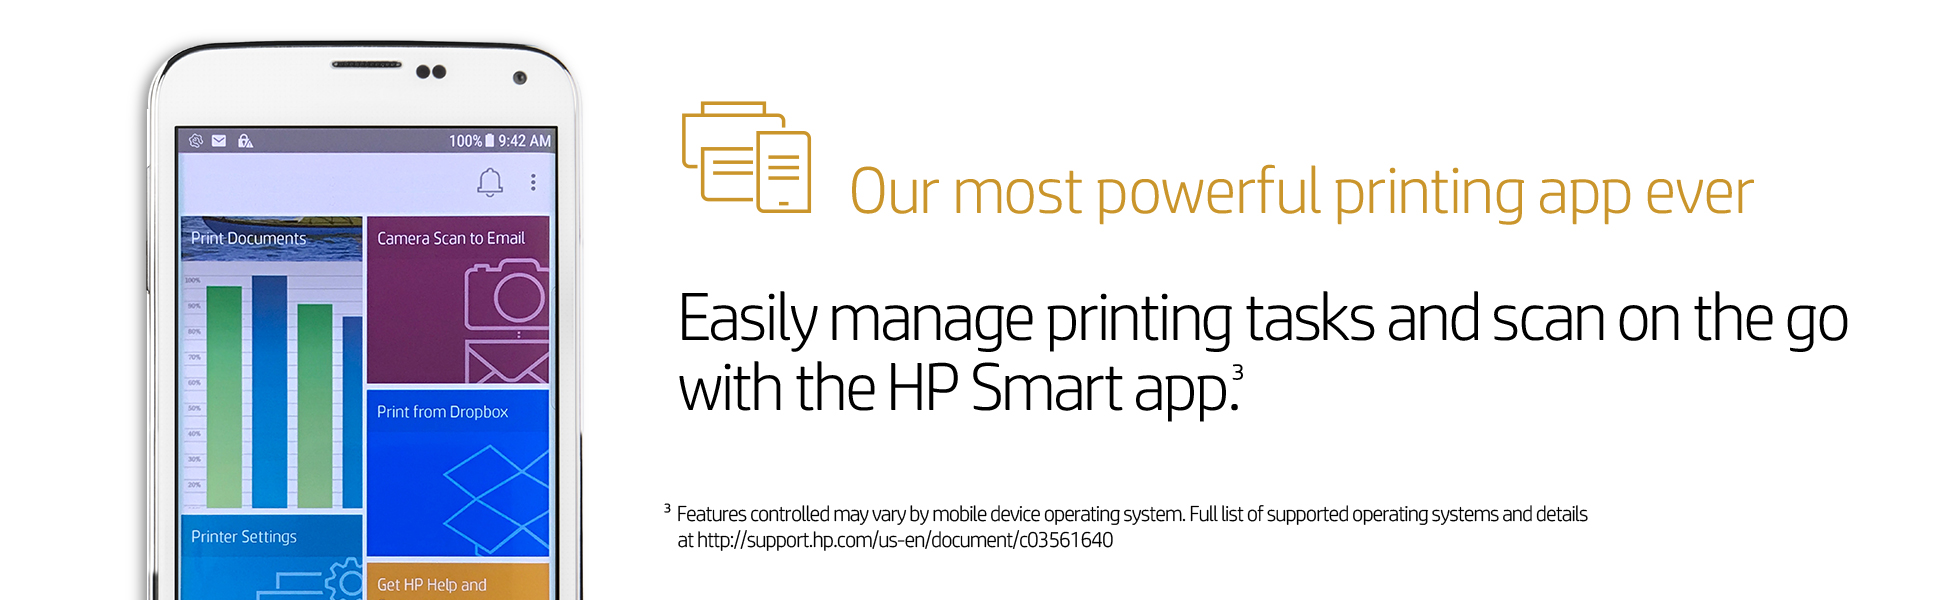 HP LaserJet Pro M180nw All-In-One Wireless Color Laser Printer (T6B74A)